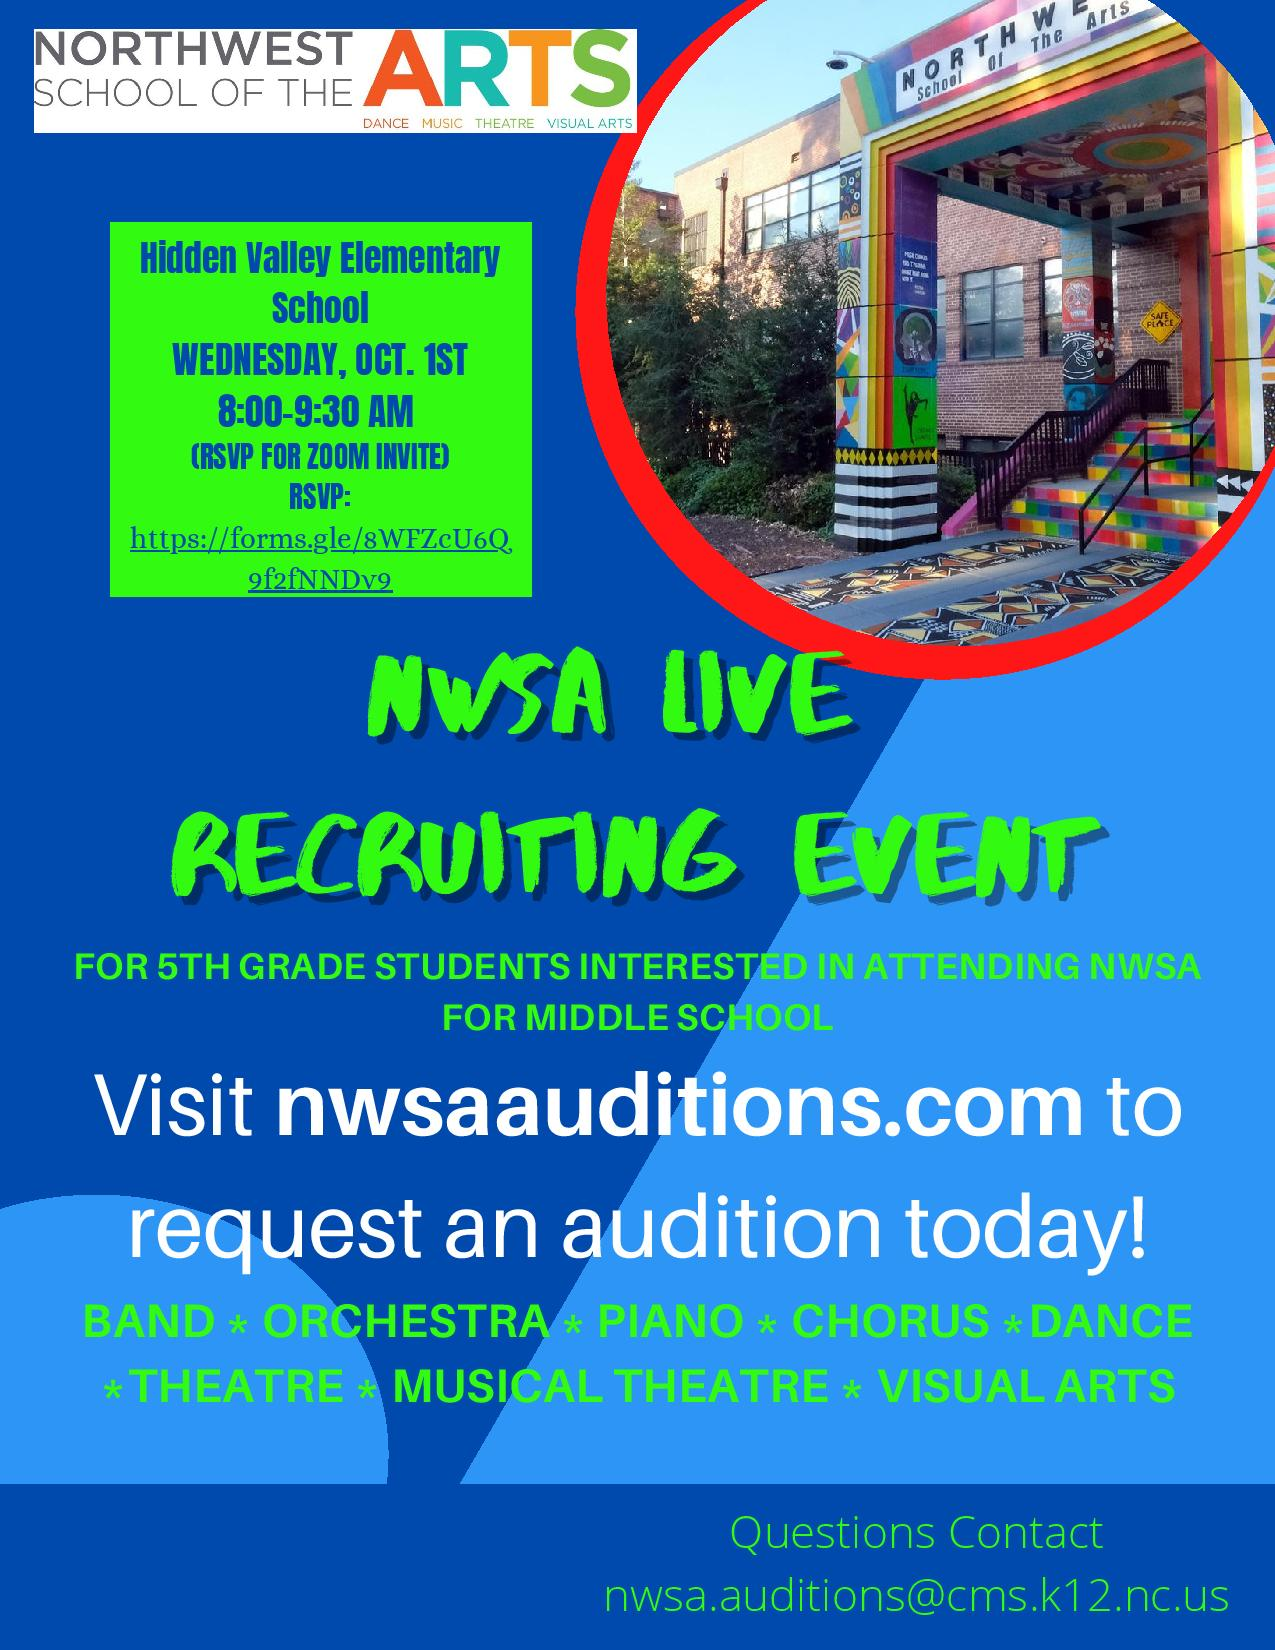 NWSA Live Recruiting Event Flyer-page-001.jpg